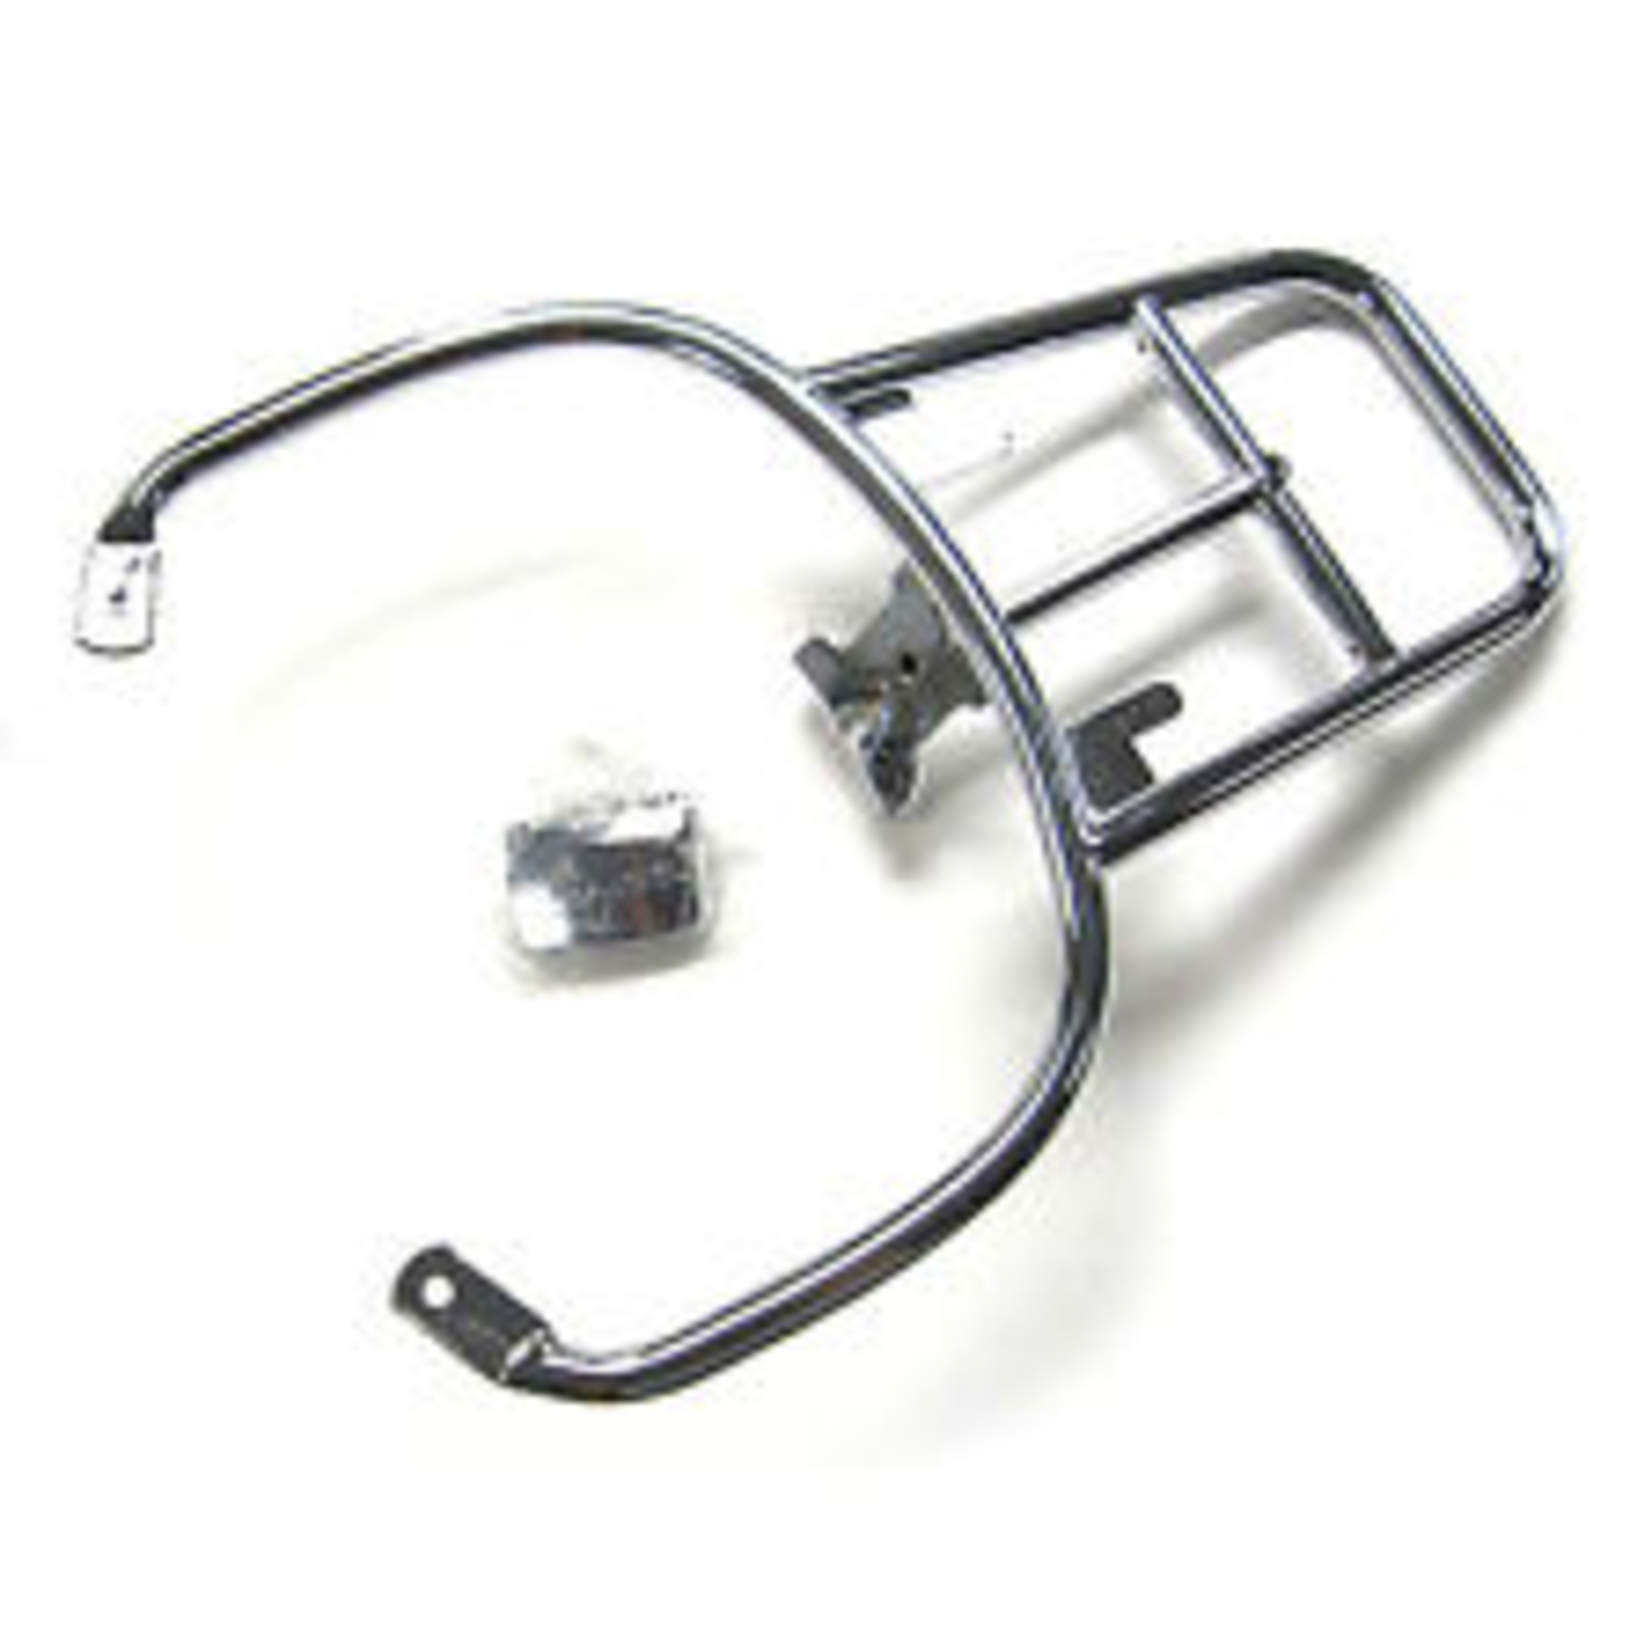 Accessories Rack, GTS Rear Chrome Top Case Carrier